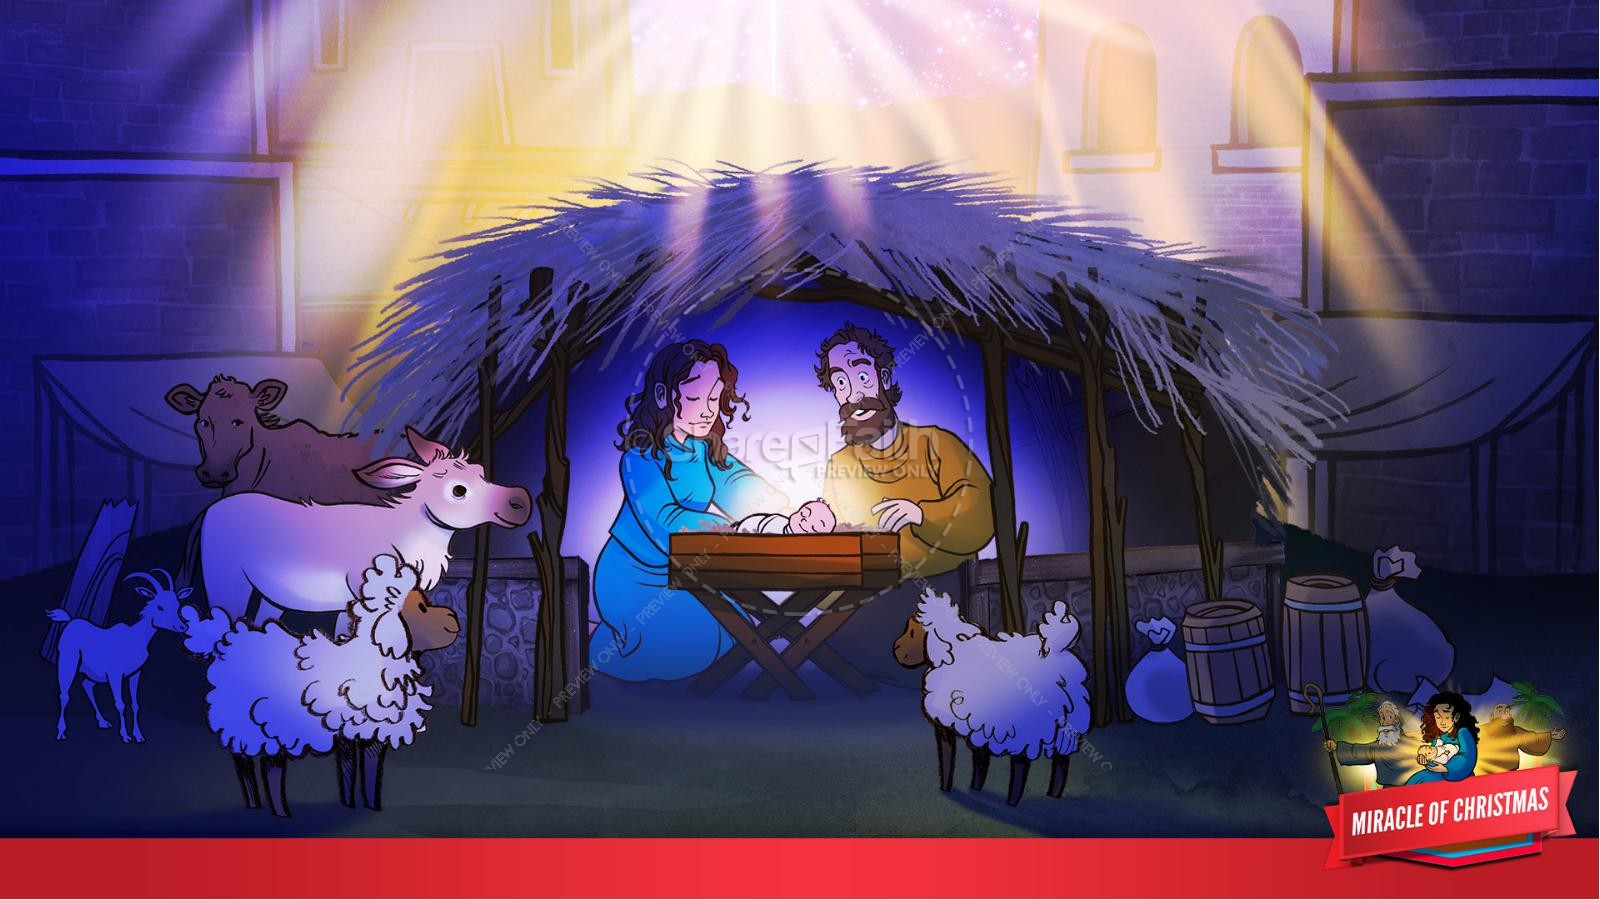 Luke 2 The Miracle of Christmas Kids Bible Story | slide 18